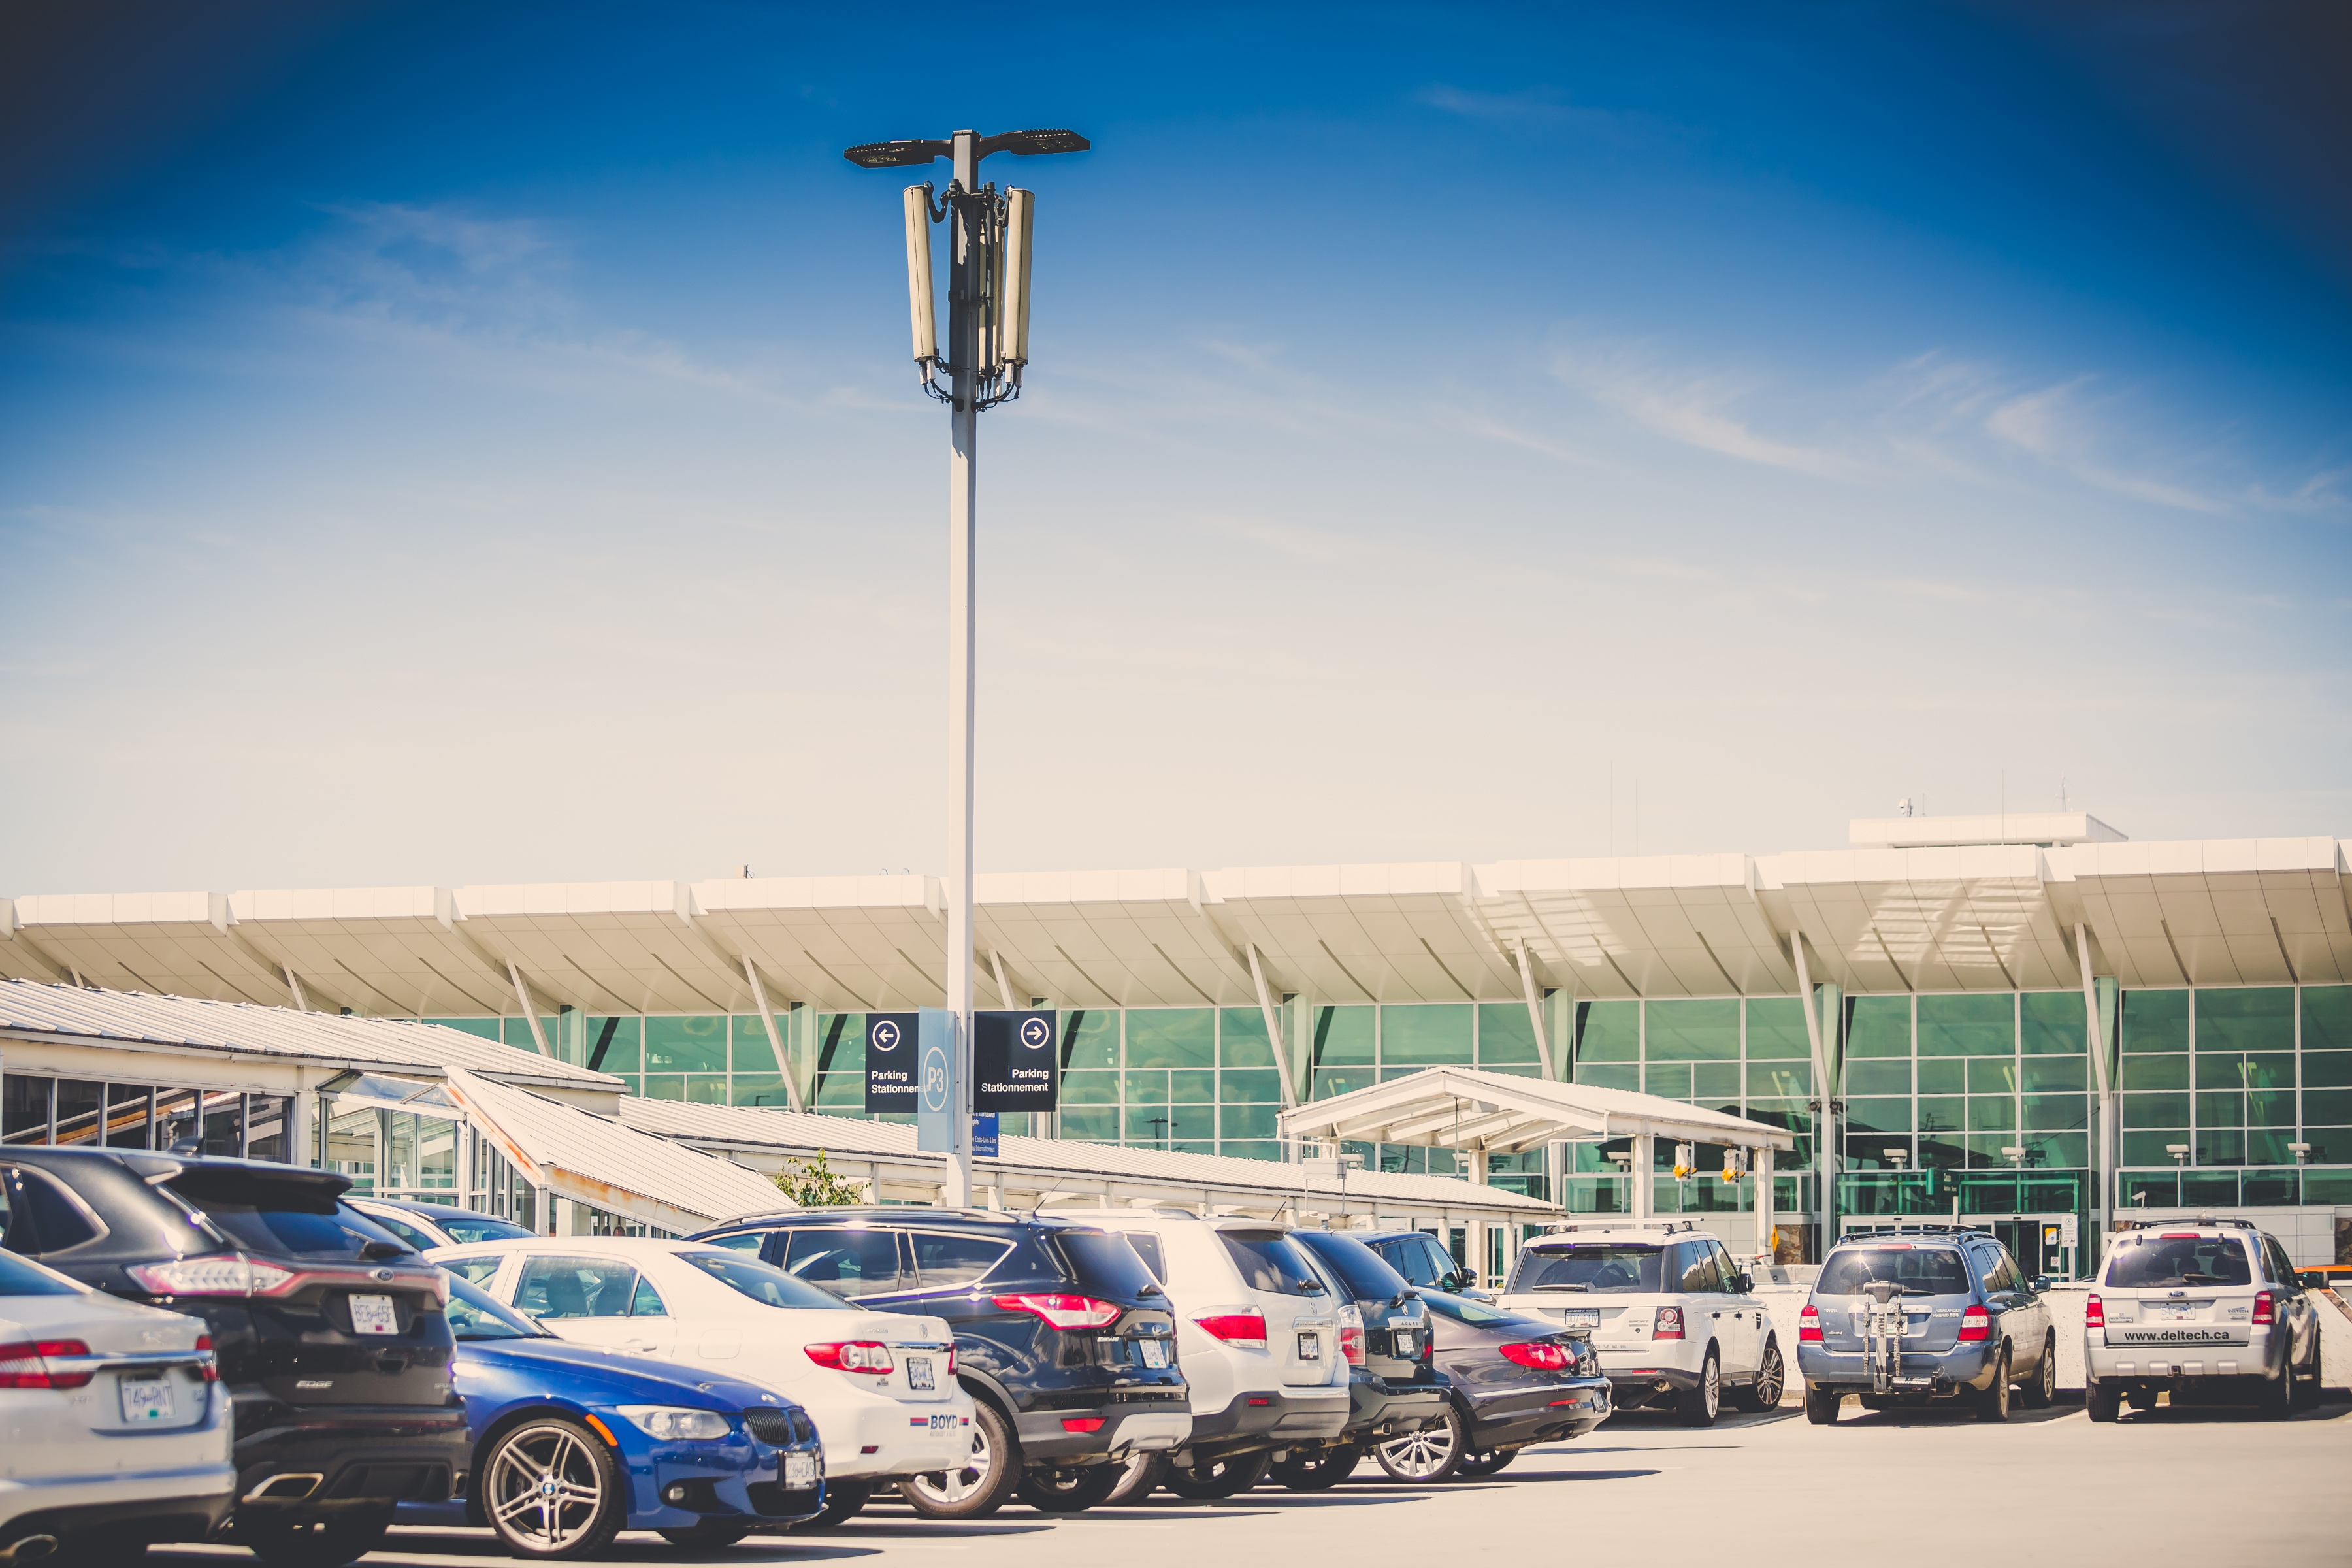 Start and end your trip at Park'N Fly, Canada's leading airport parking company. With a network that spans coast-to-coast, we currently operate in Vancouver, Edmonton, Winnipeg, Toronto, Ottawa, Montréal, and Halifax.